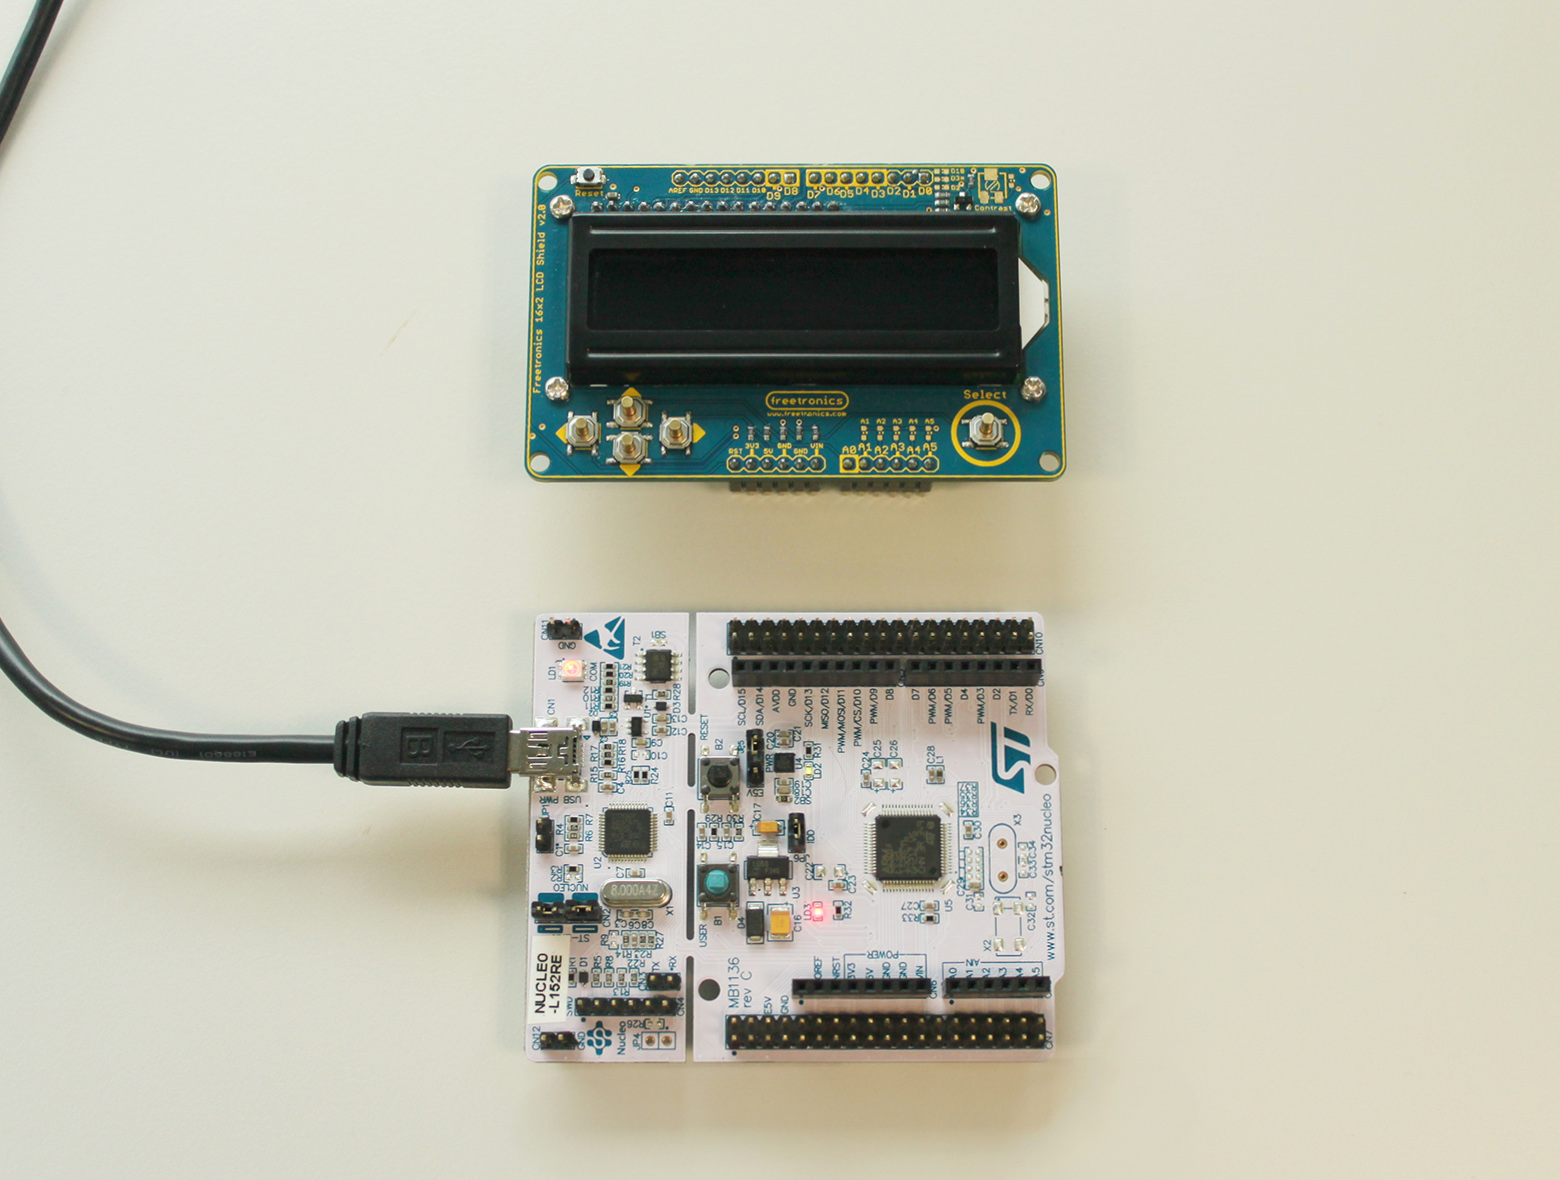 Hands-on: ST Nucleo board with a shield | Mbed